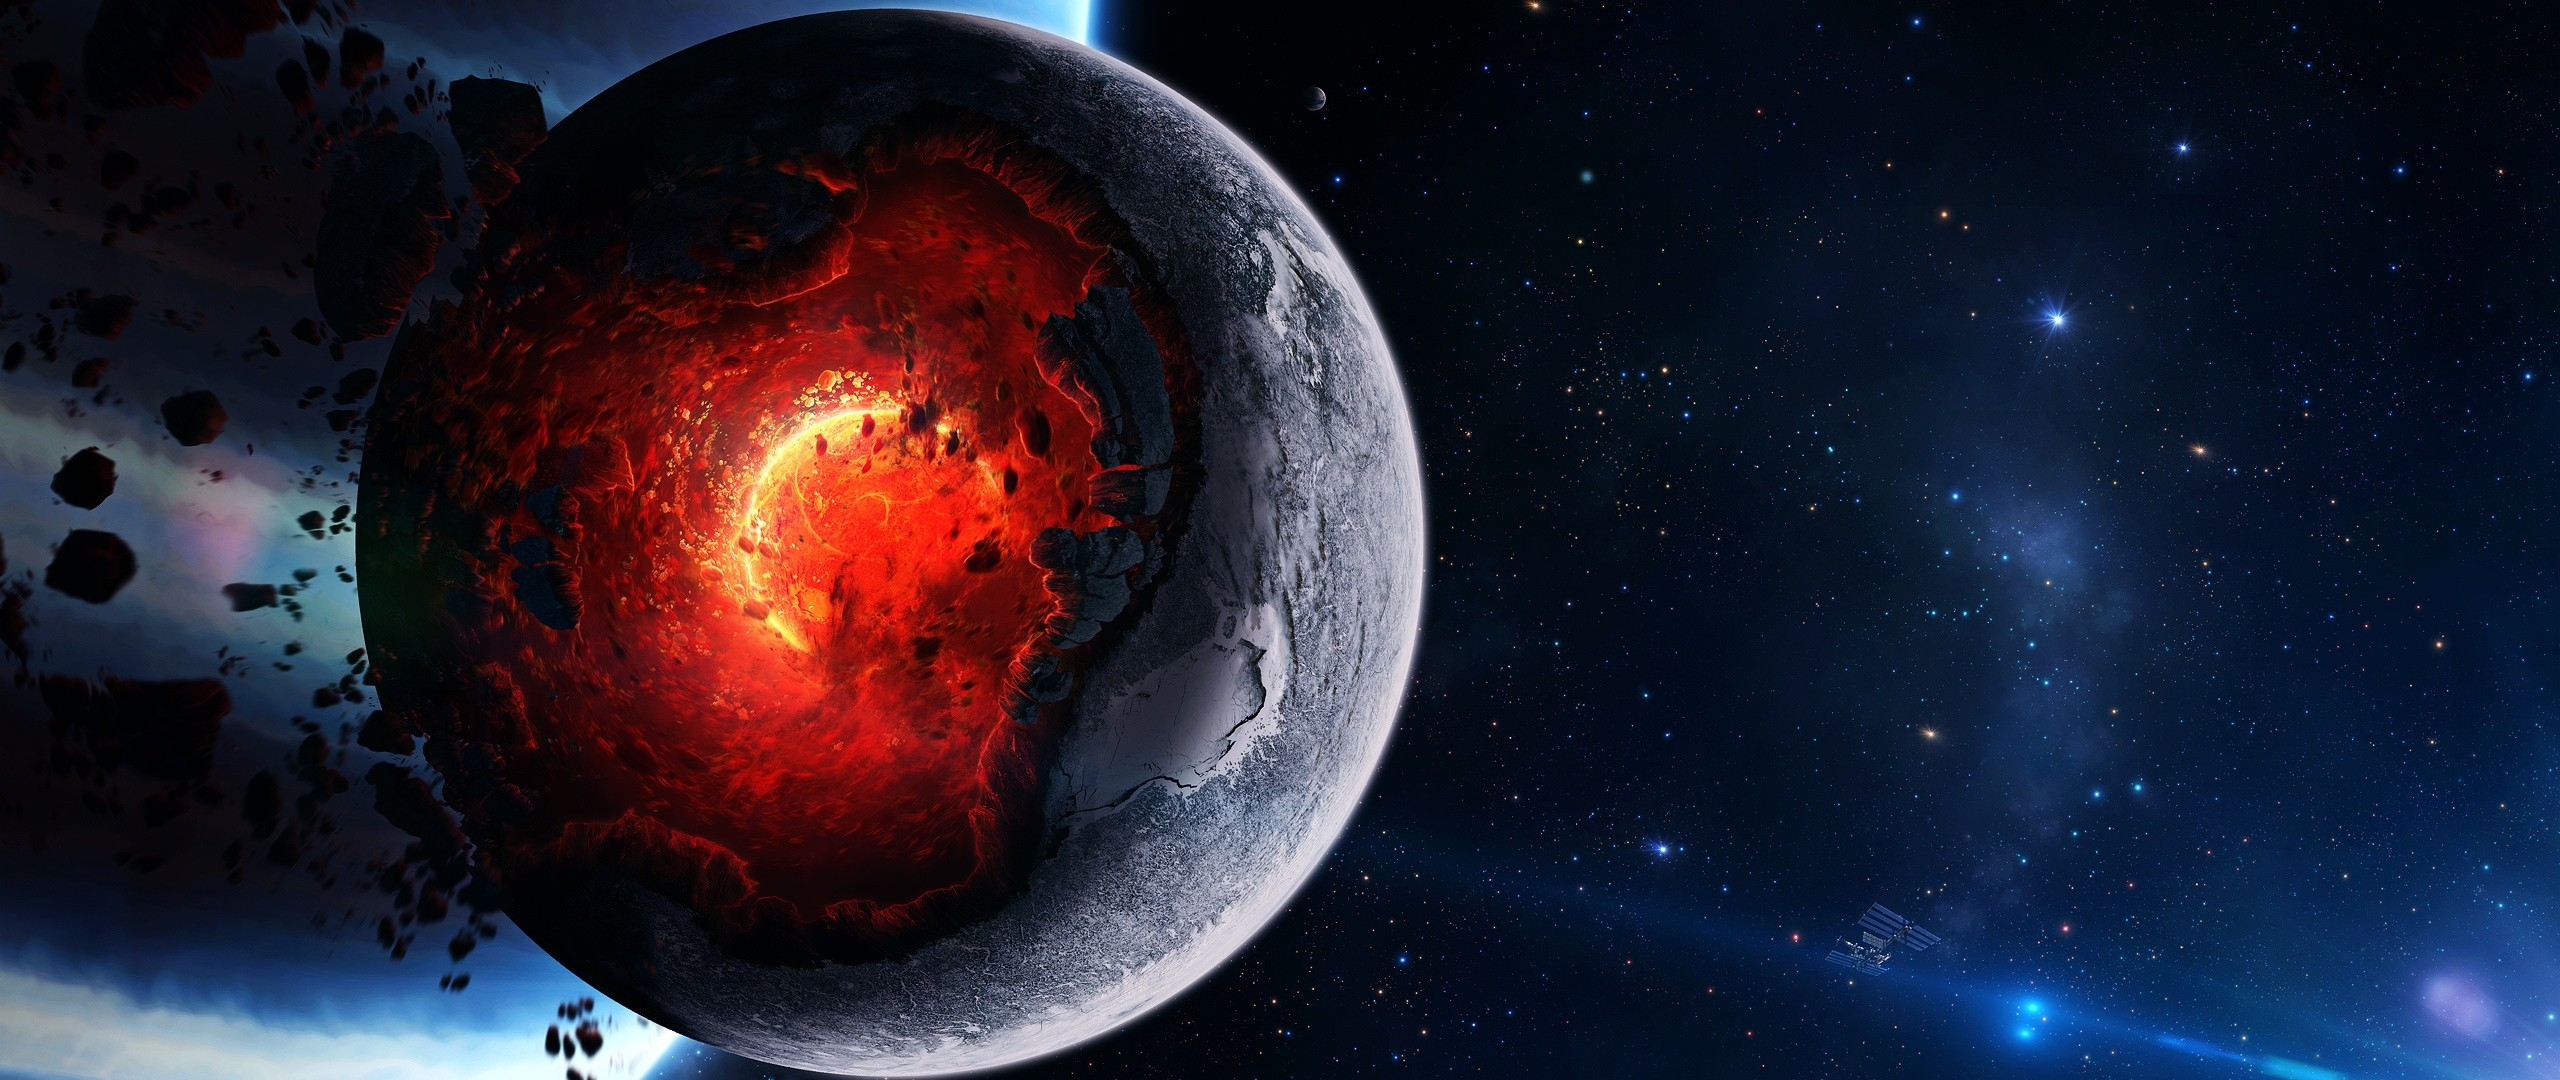 2560x1080 Preview Wallpaper Space Cataclysm Planet Art Explosion Asteroids Comets